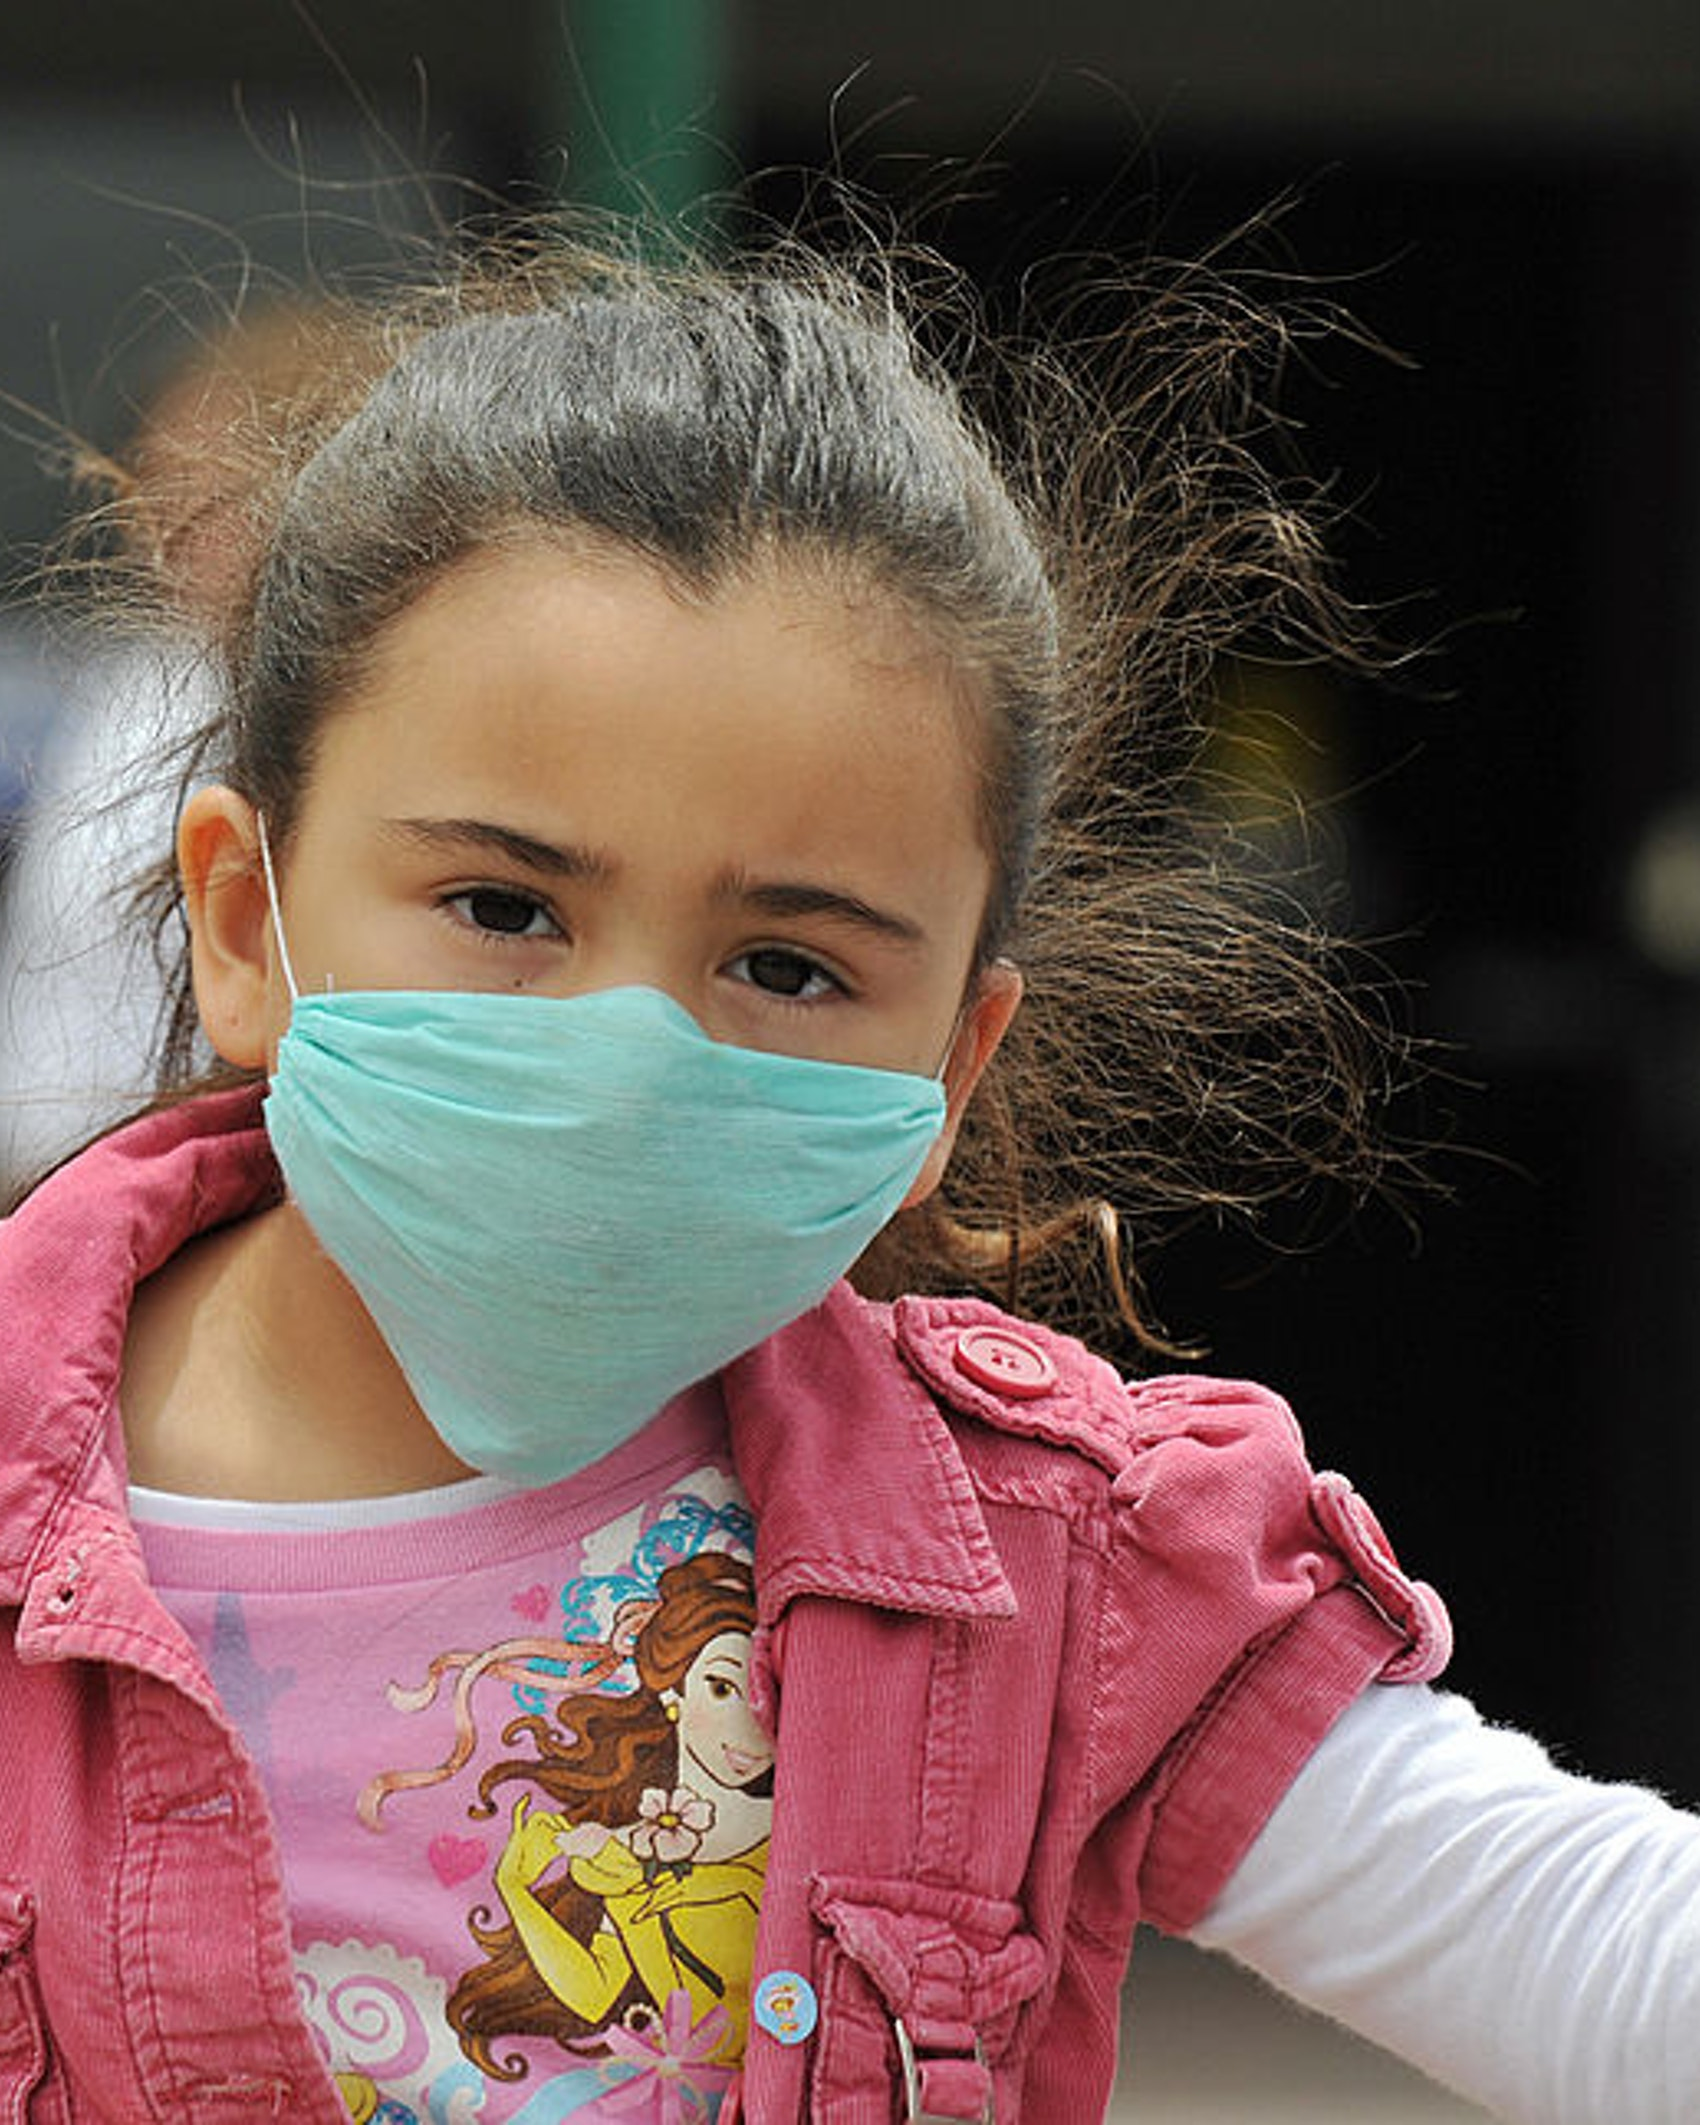 """A girl, wearing a mask, holds her father's hand as they cross the international border between US and Mexico in San Ysidro, California, on April 27, 2009. The World Health Organization (WHO) raised its flu pandemic alert level from three to four, signalling a """"significant increase in risk of a pandemic."""" The number of confirmed cases in the United States doubled to 40 on Monday, while Britain and Spain recorded their first swine flu victims. Mexico said the number of confirmed and suspected deaths from the flu had risen to 149, while some 1,600 people were thought to be infected. AFP PHOTO/Jewel SAMAD (Photo credit should read JEWEL SAMAD/AFP via Getty Images)"""